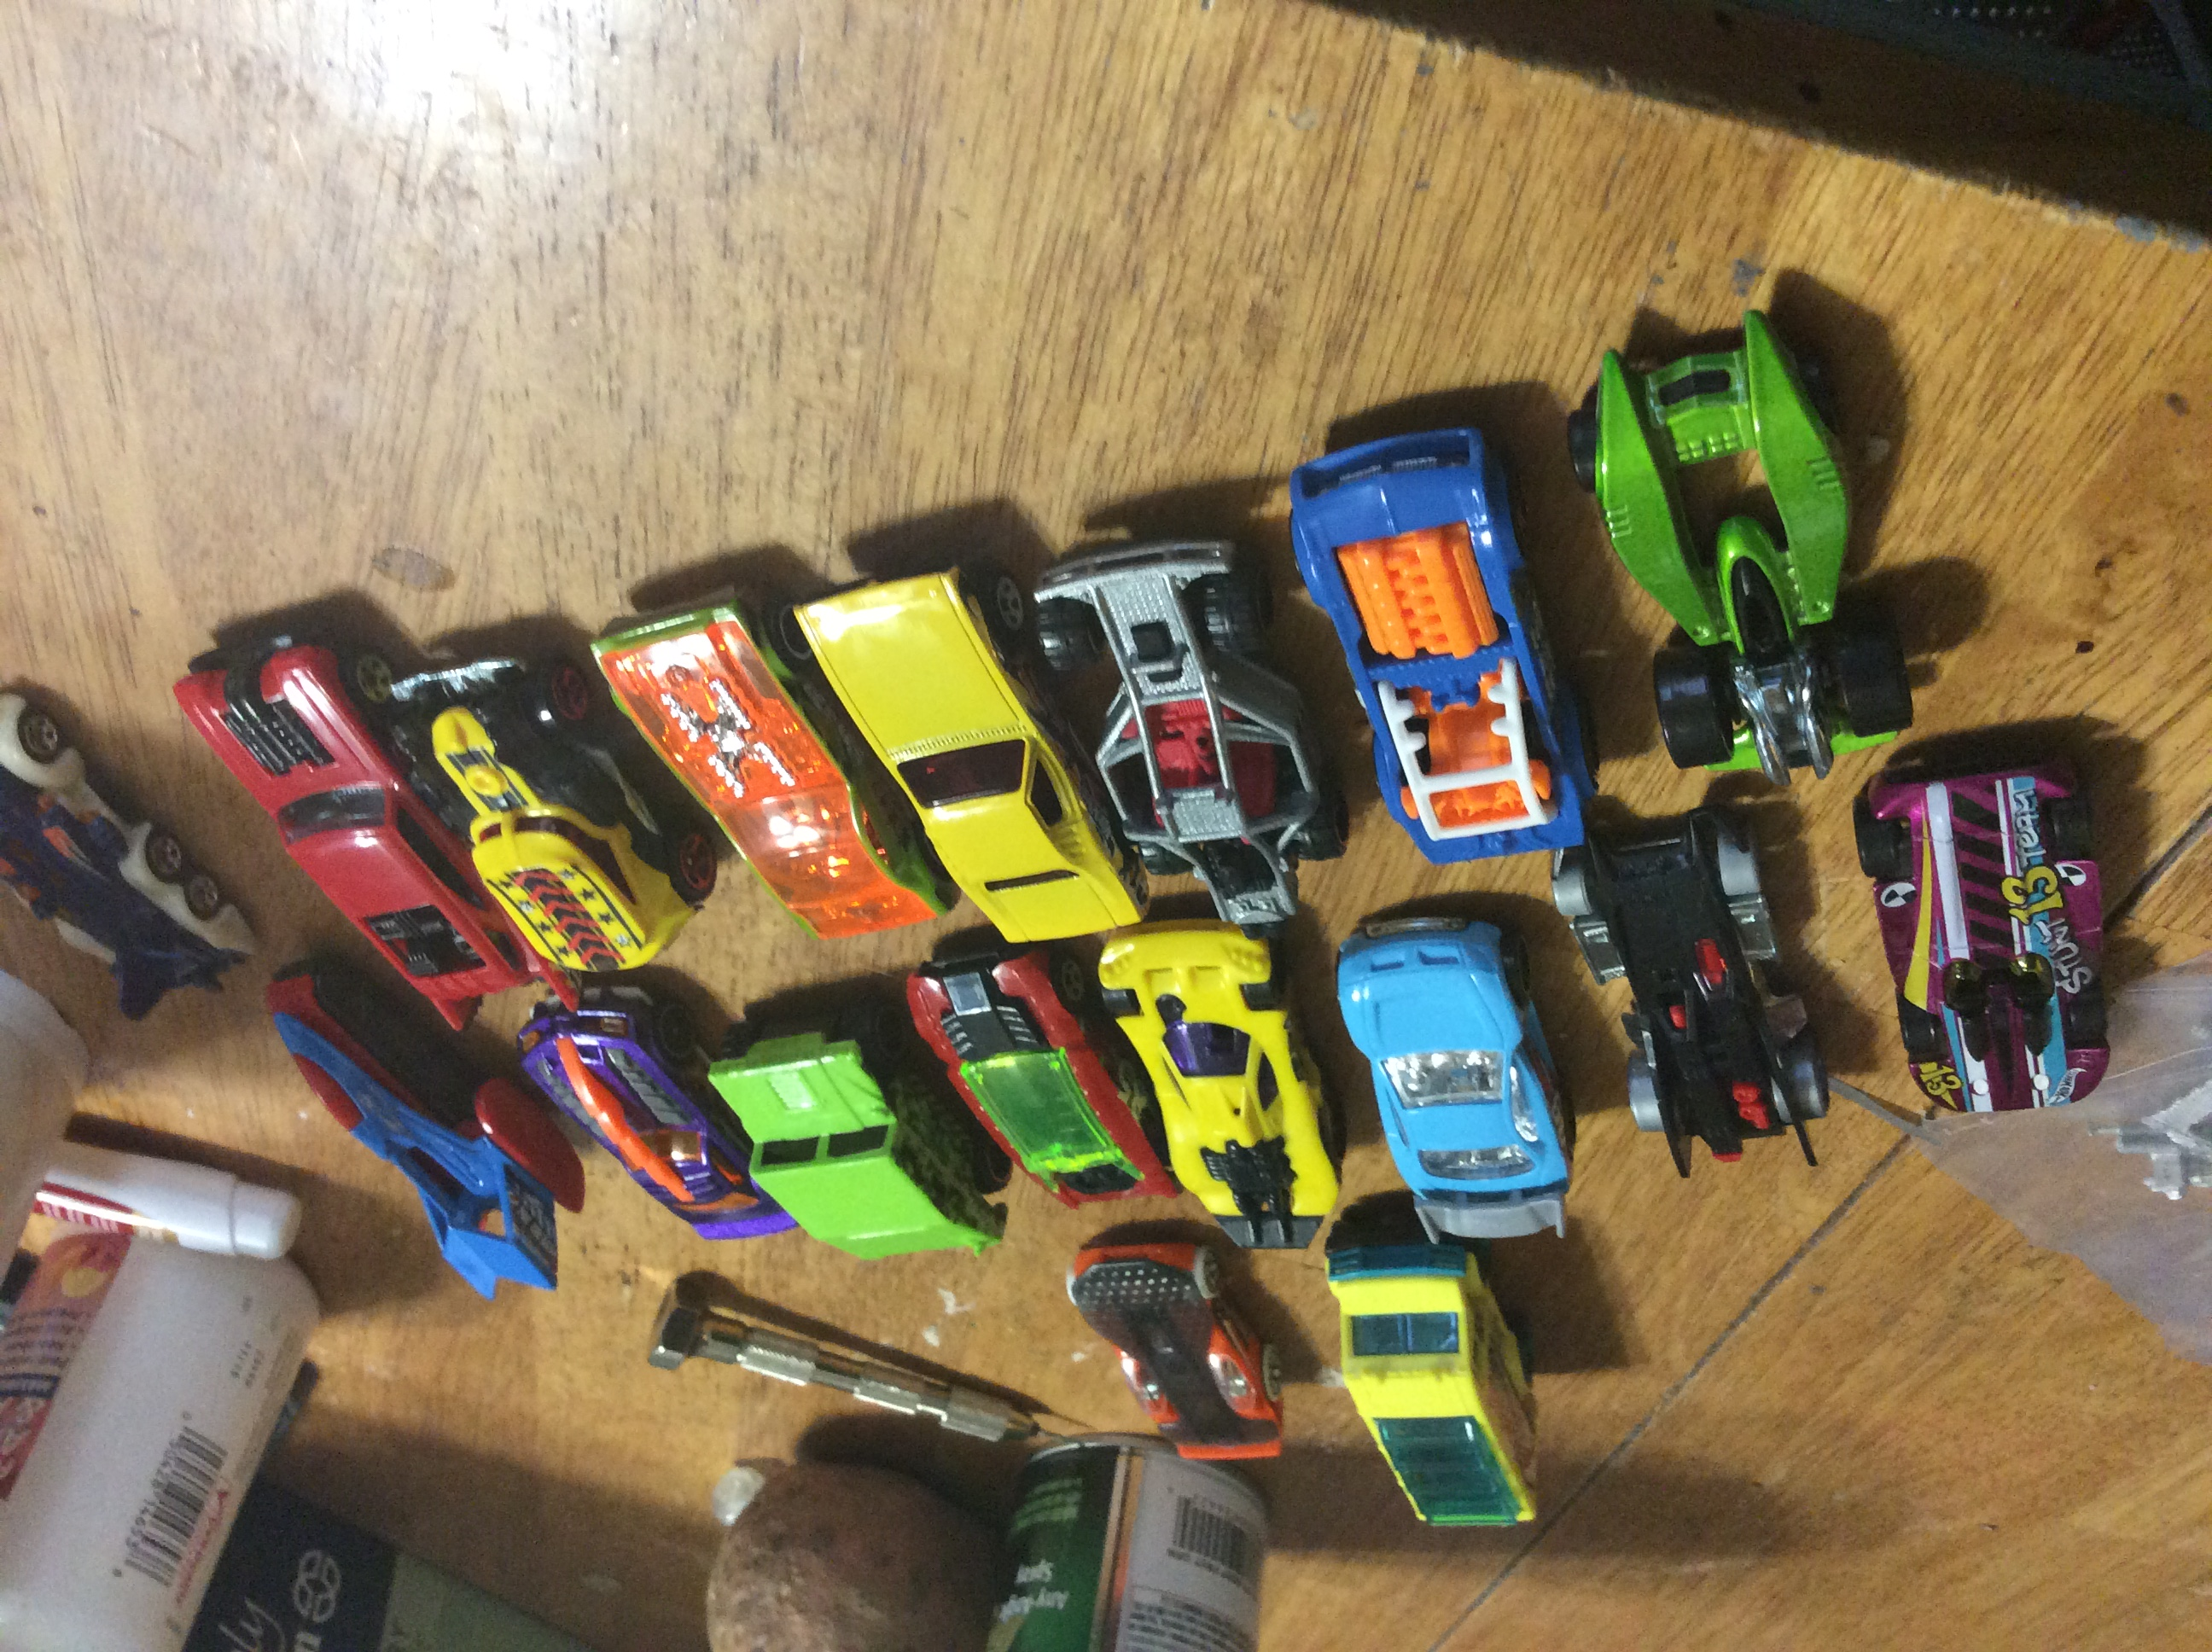 White line fever car conversions preamble third point of click to see closeup pre conversion cars all from a discount store all sold in packs of five for four dollars and some change first challenge is to get fandeluxe Ebook collections